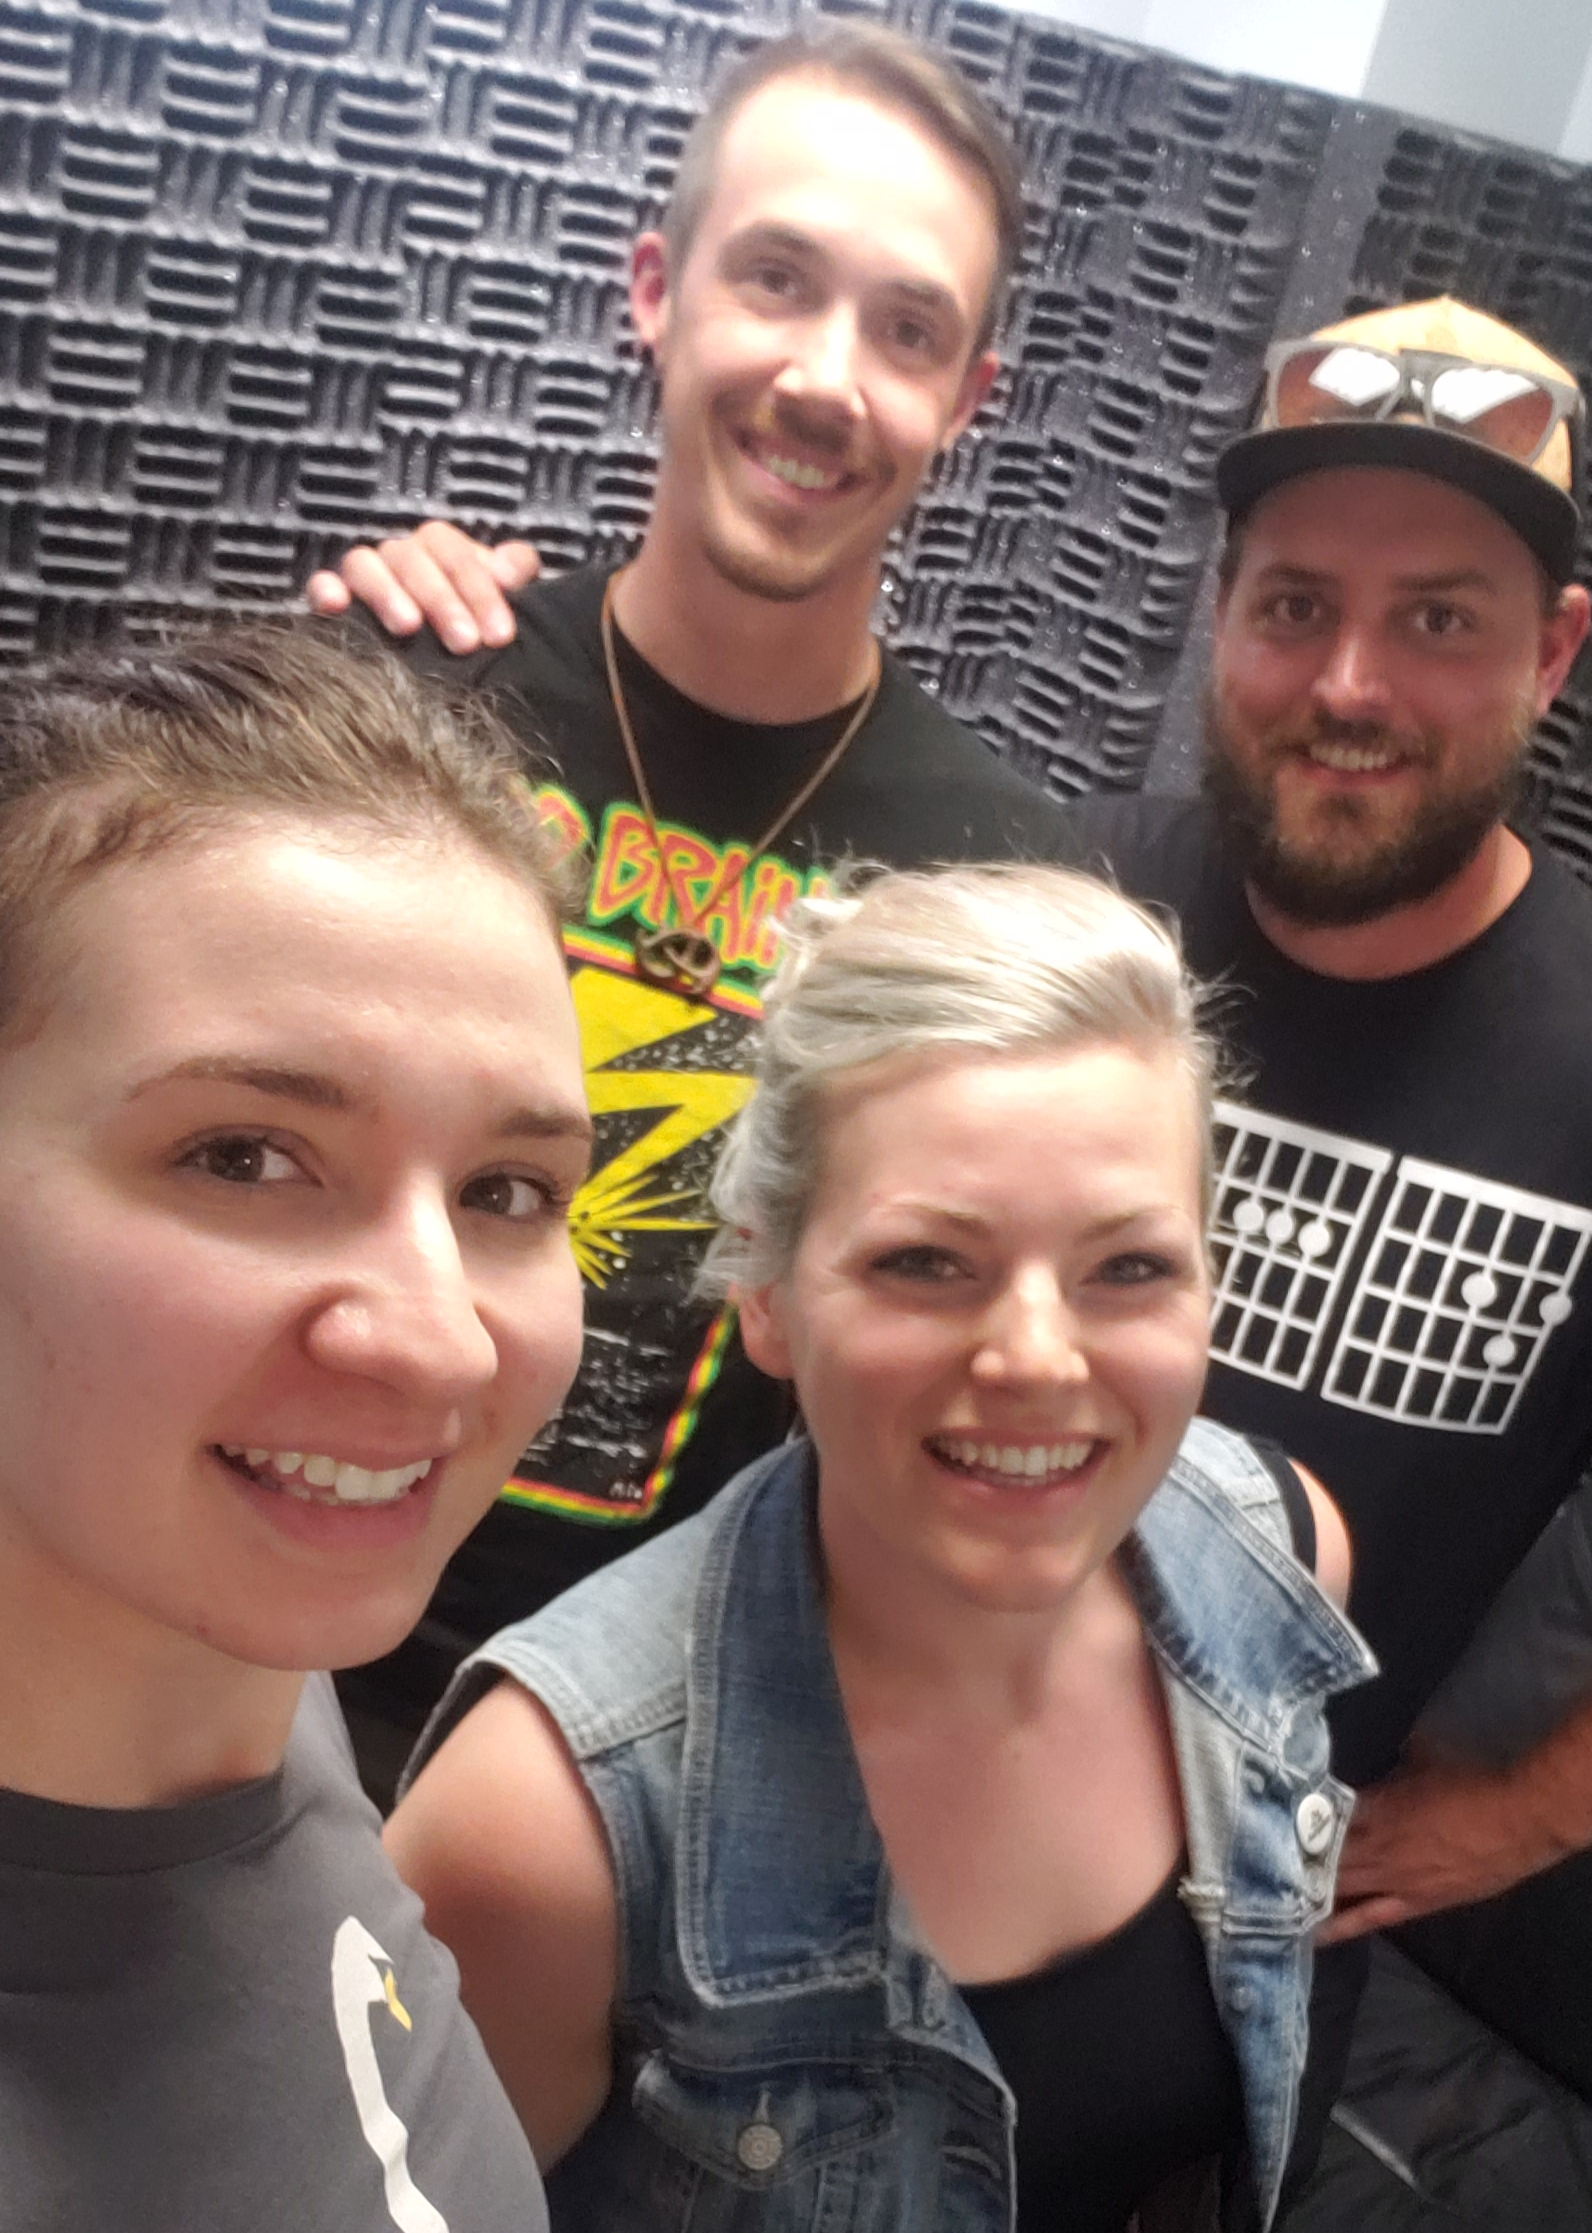 Ashley Bieniarz with Kyle, Kendra and Evan from Northern Royals (Left to Right)